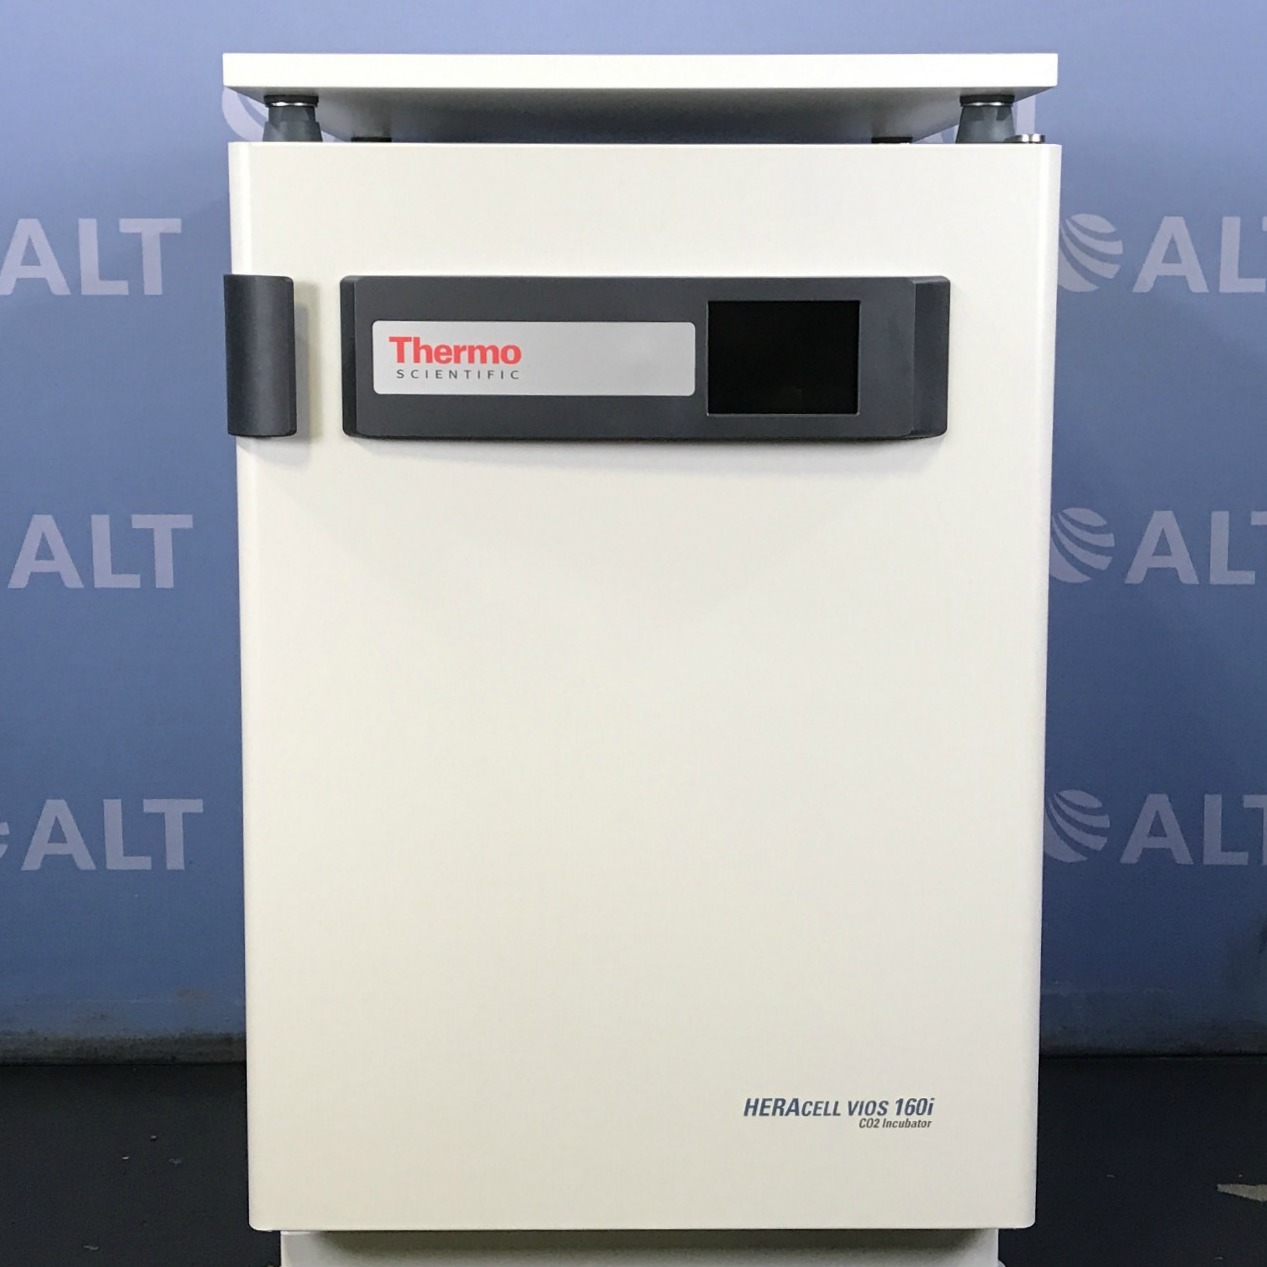 Thermo Scientific Heracell VIOS 160i CO2 Incubator with Stainless Steel Chamber Image